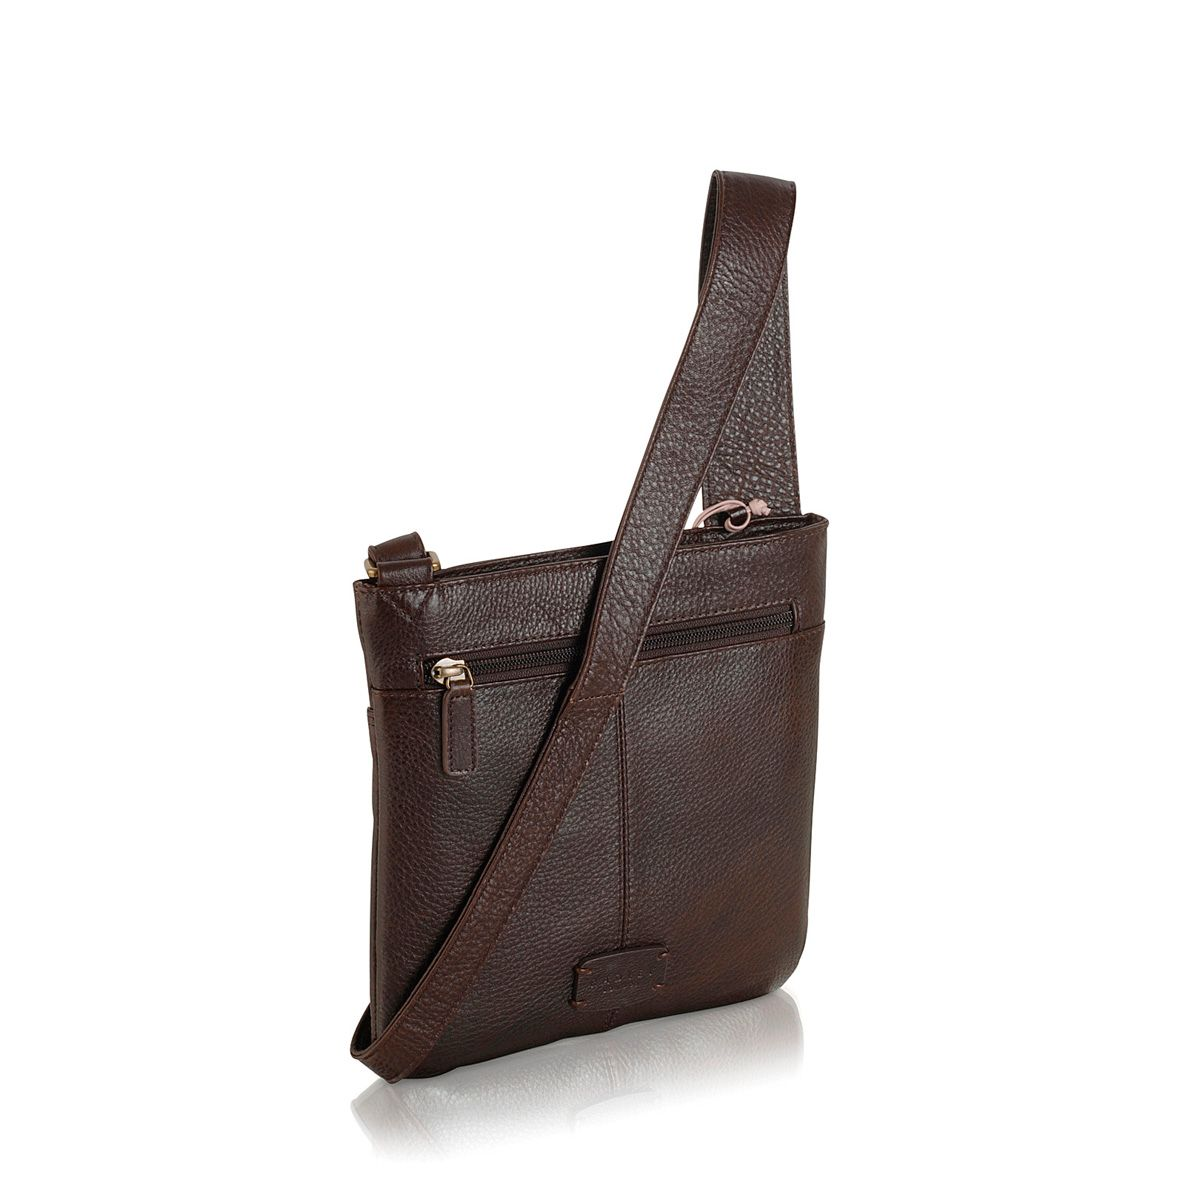 Pocket bag small ziptop xbody leather brown bag